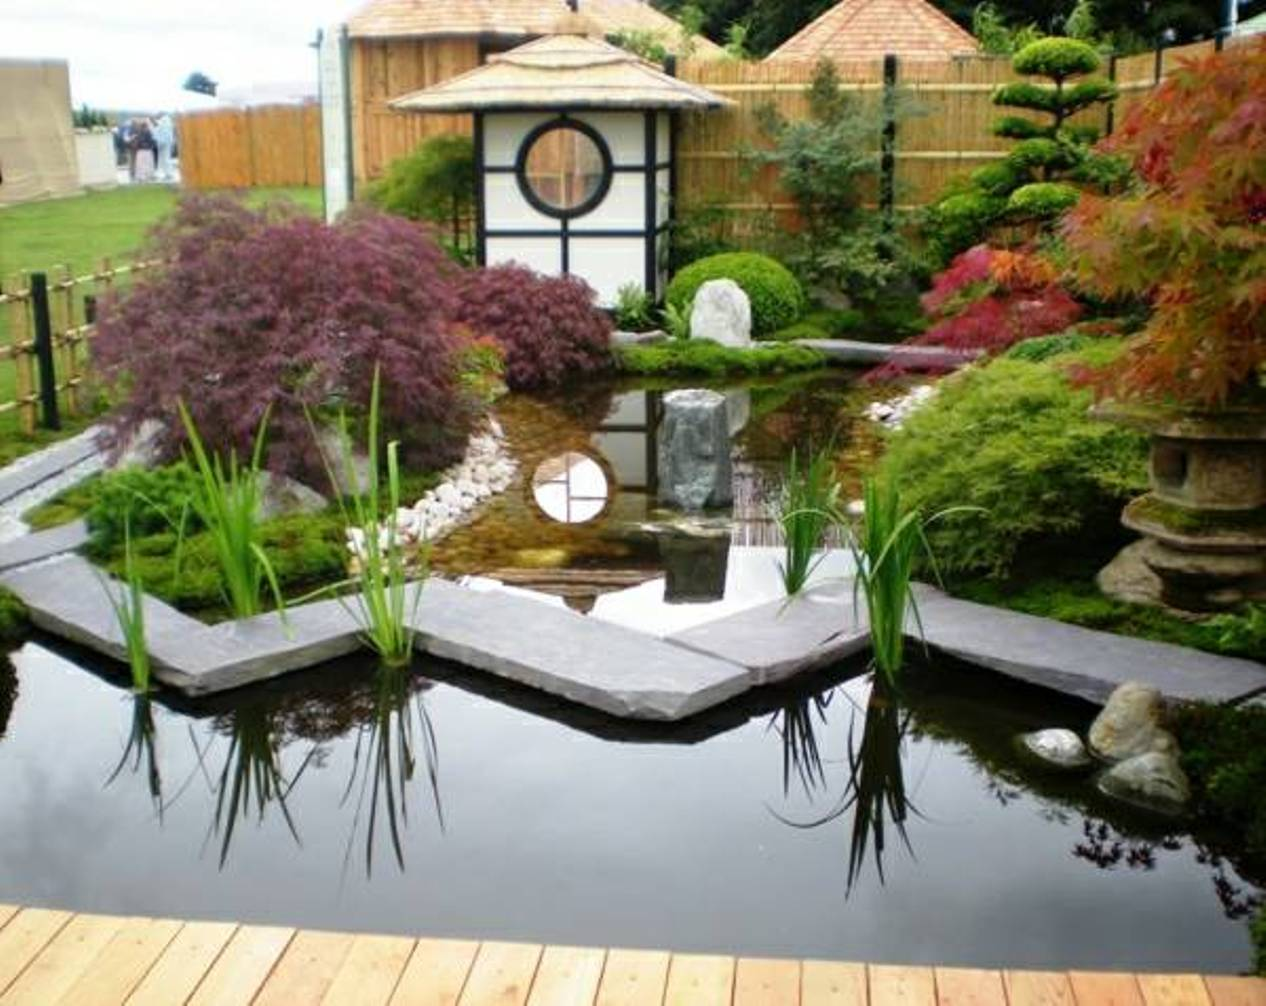 Pond design inspiration pond stars uk ltd dorset for Japanese landscape architecture